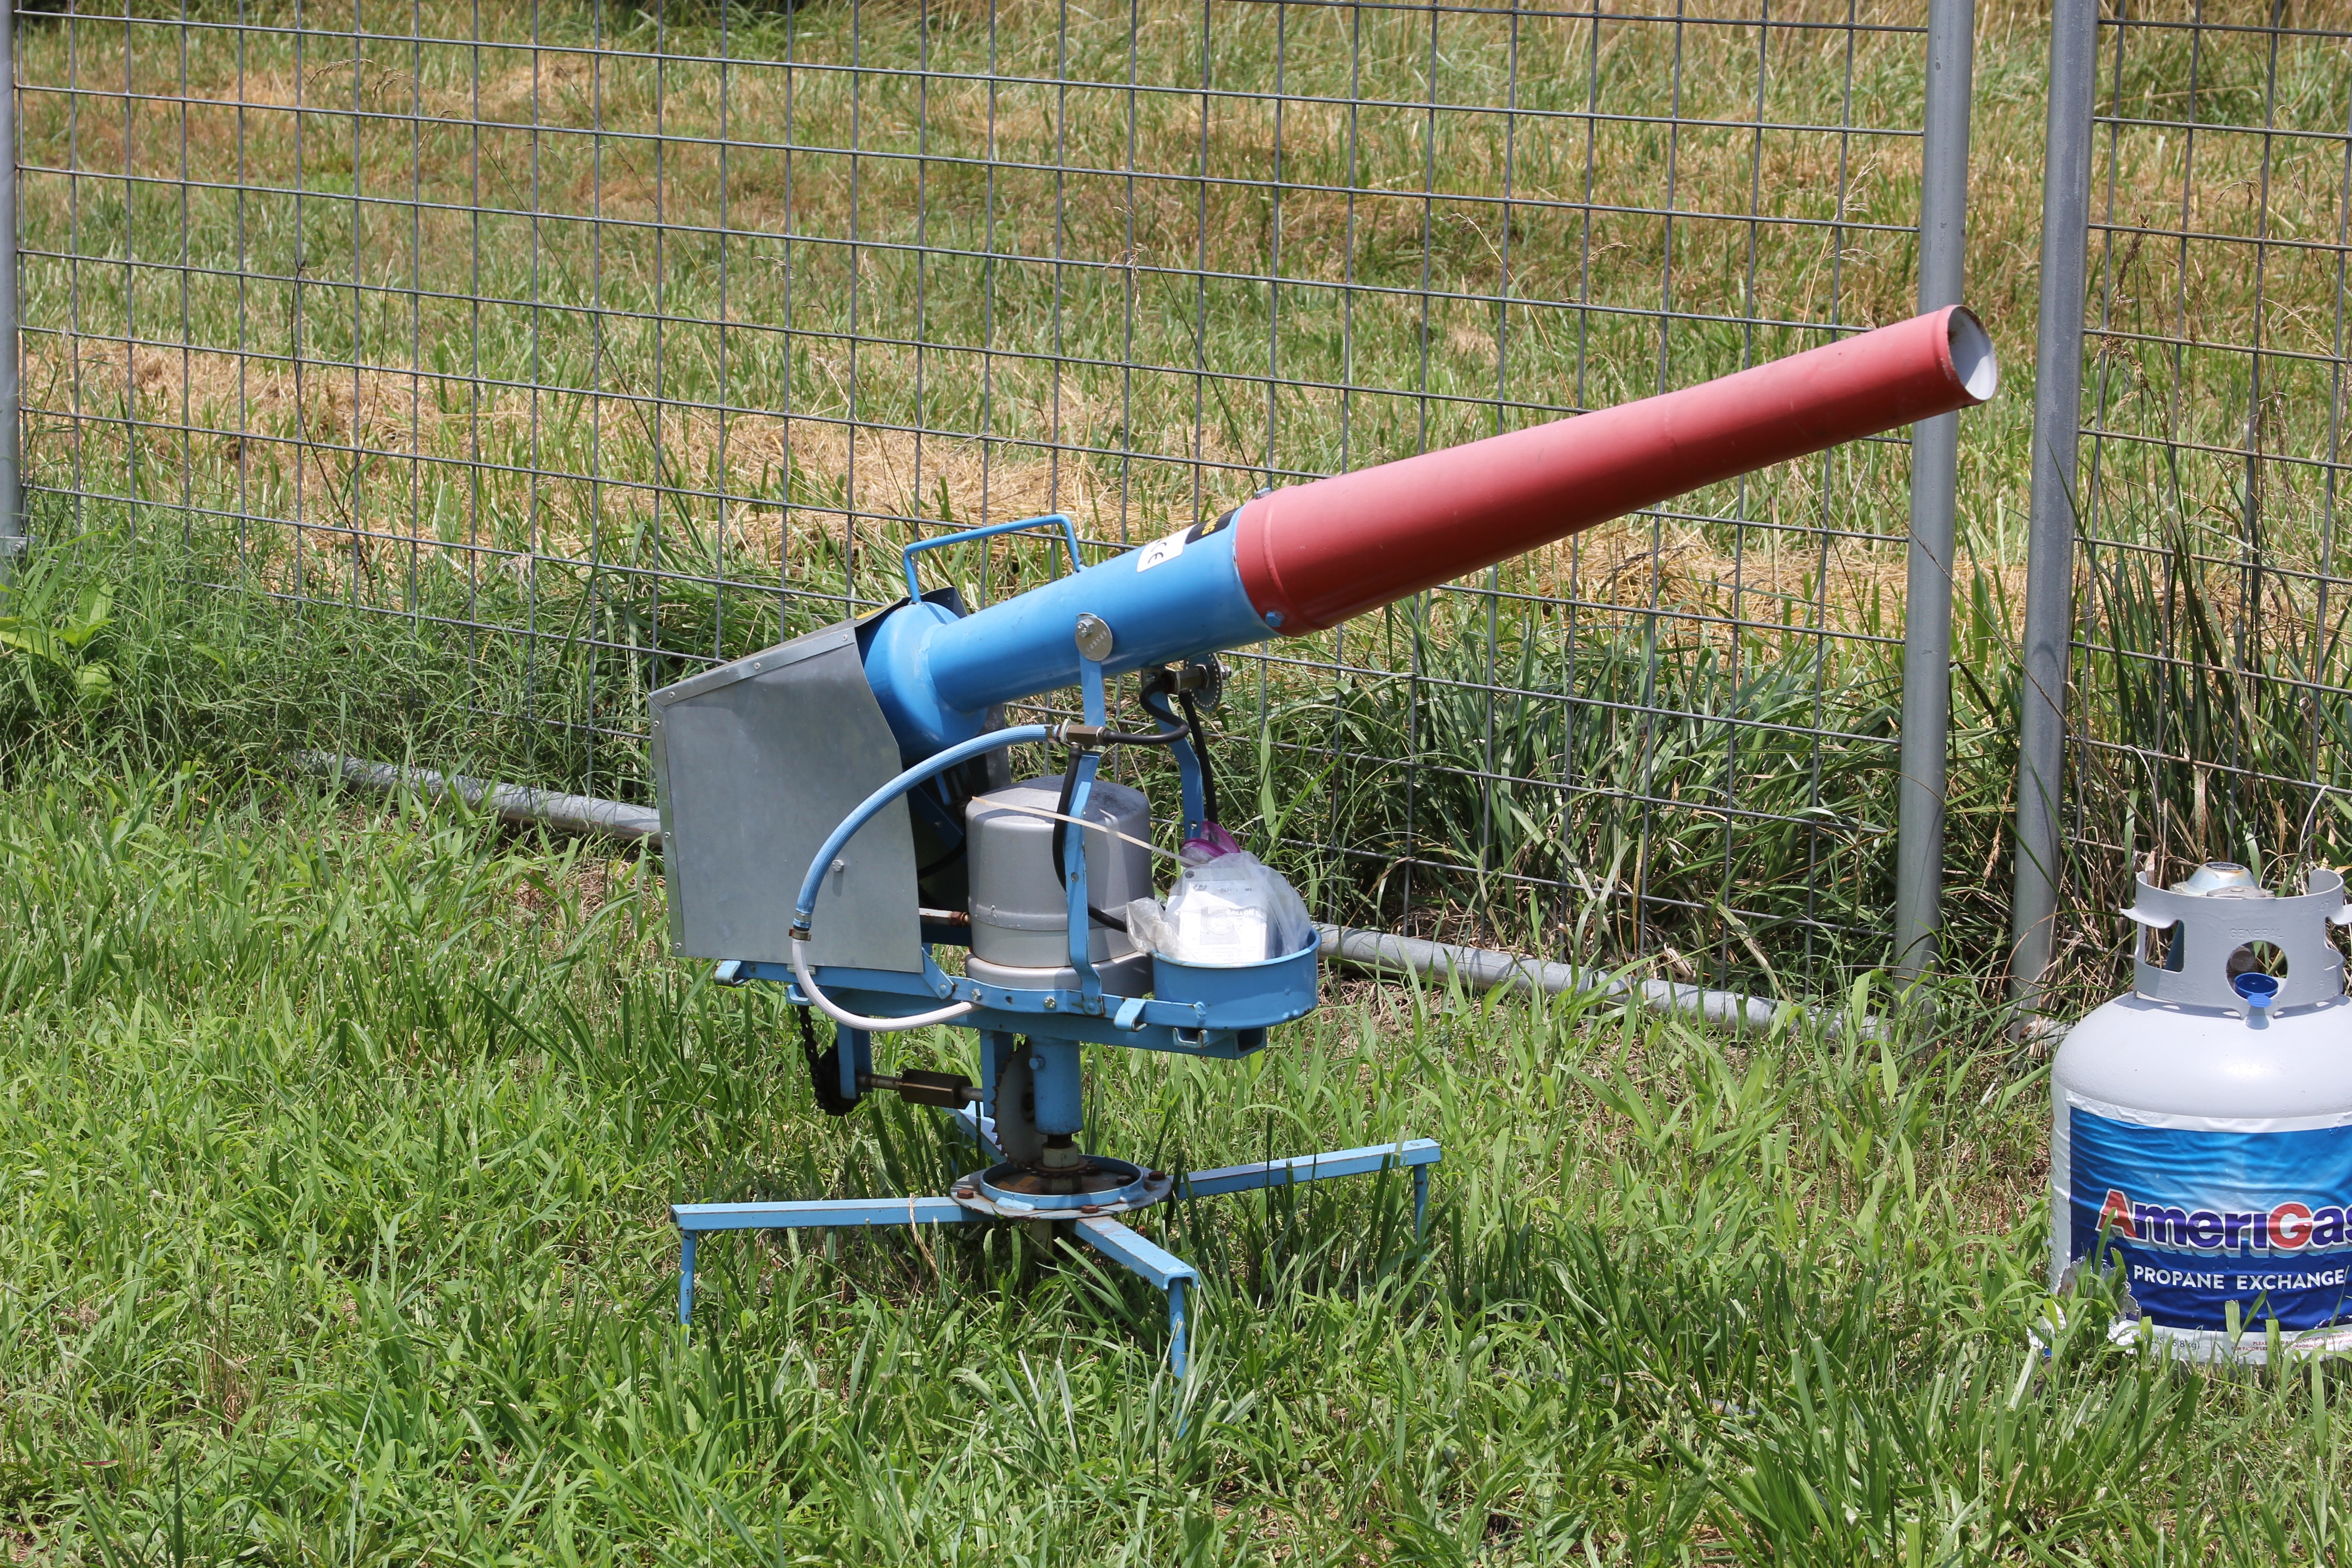 The blueberry research fields on the University of Georgia Griffin campus are equipped with an automatically firing carbide air cannon to help keep the birds away from the berries. The cannon produces a thunderclap-like sound to deter birds and other wildlife and is among the tactics used at airports to scare birds away from aircraft.